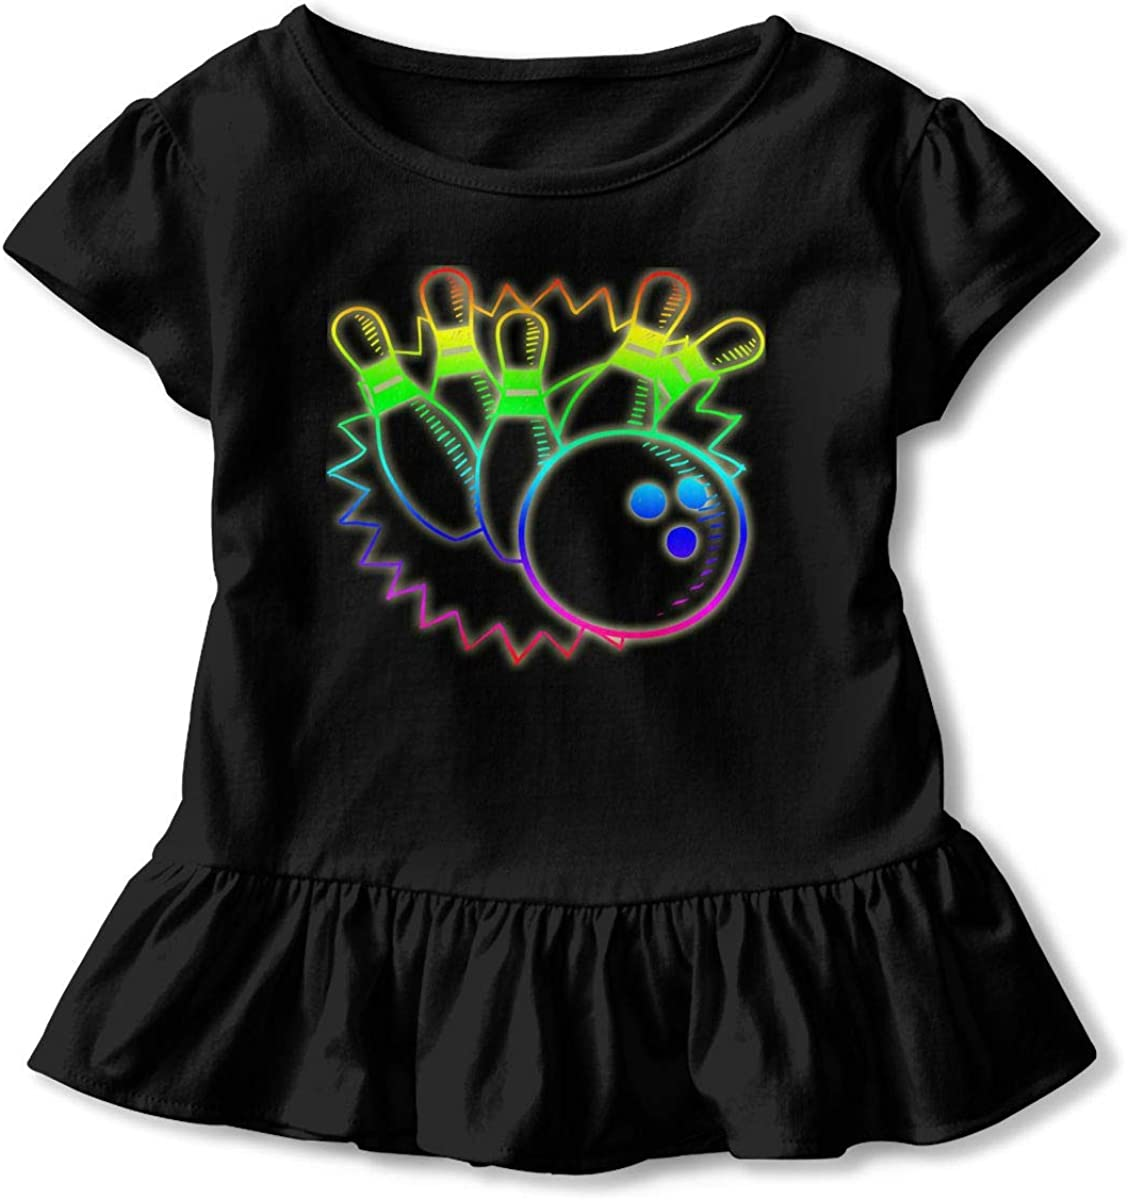 Cheng Jian Bo 80s Retro Neon Sign Strike Bowling Toddler Girls T Shirt Kids Cotton Short Sleeve Ruffle Tee